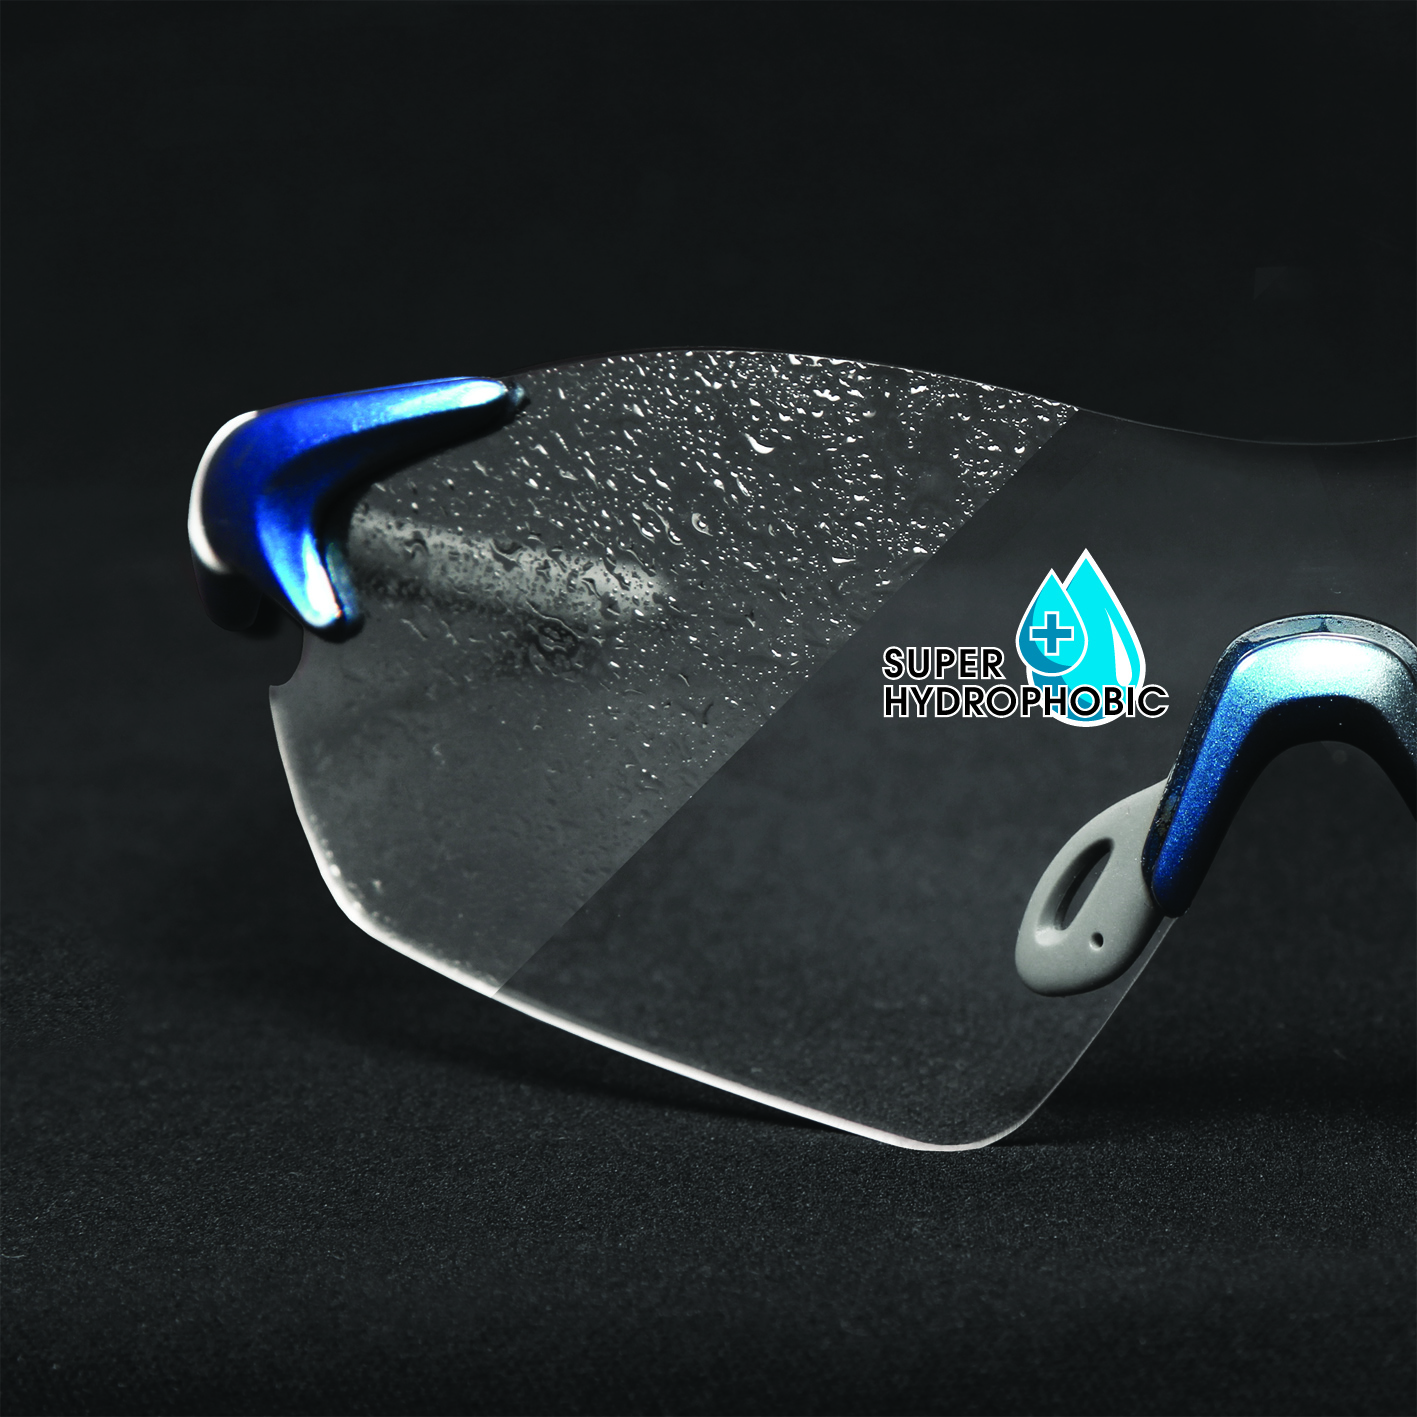 Super hydrophobic finish (on clear lens only) repels water and spray on outside of lens